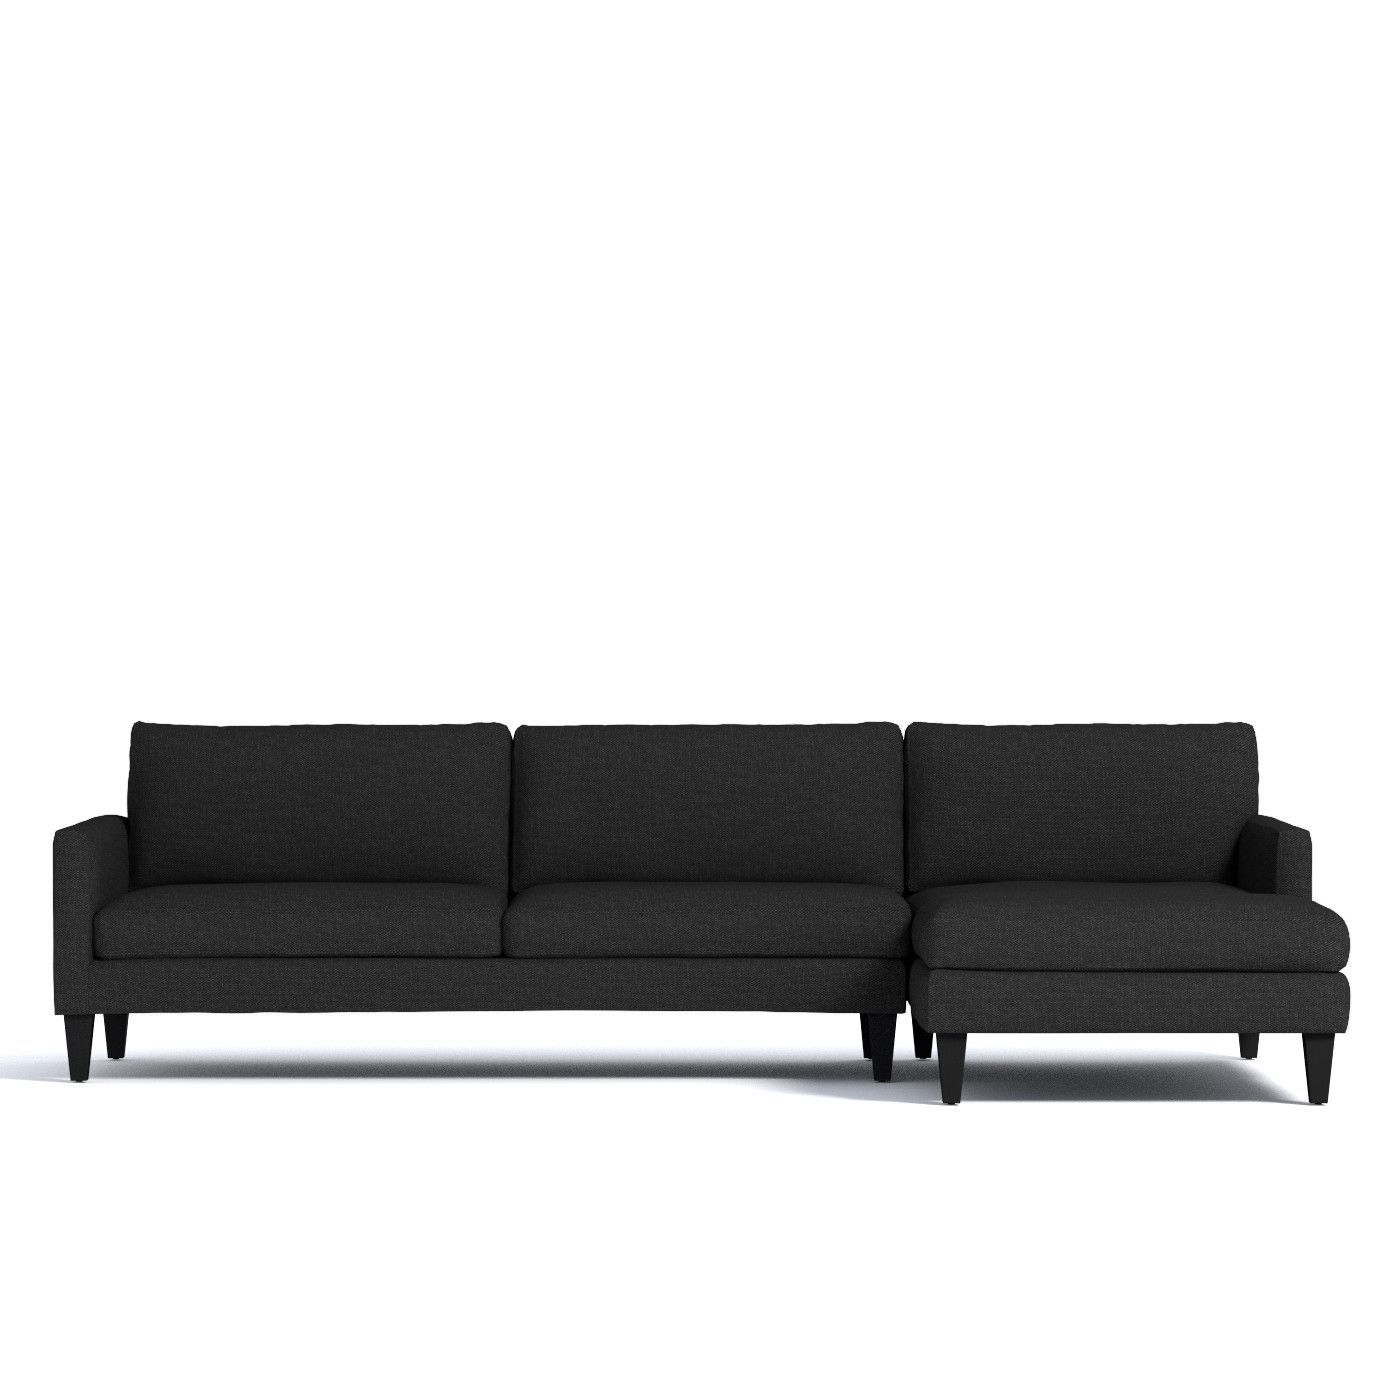 This Sharp Low Profile Sectional Is The Pinnacle Of Modern Style